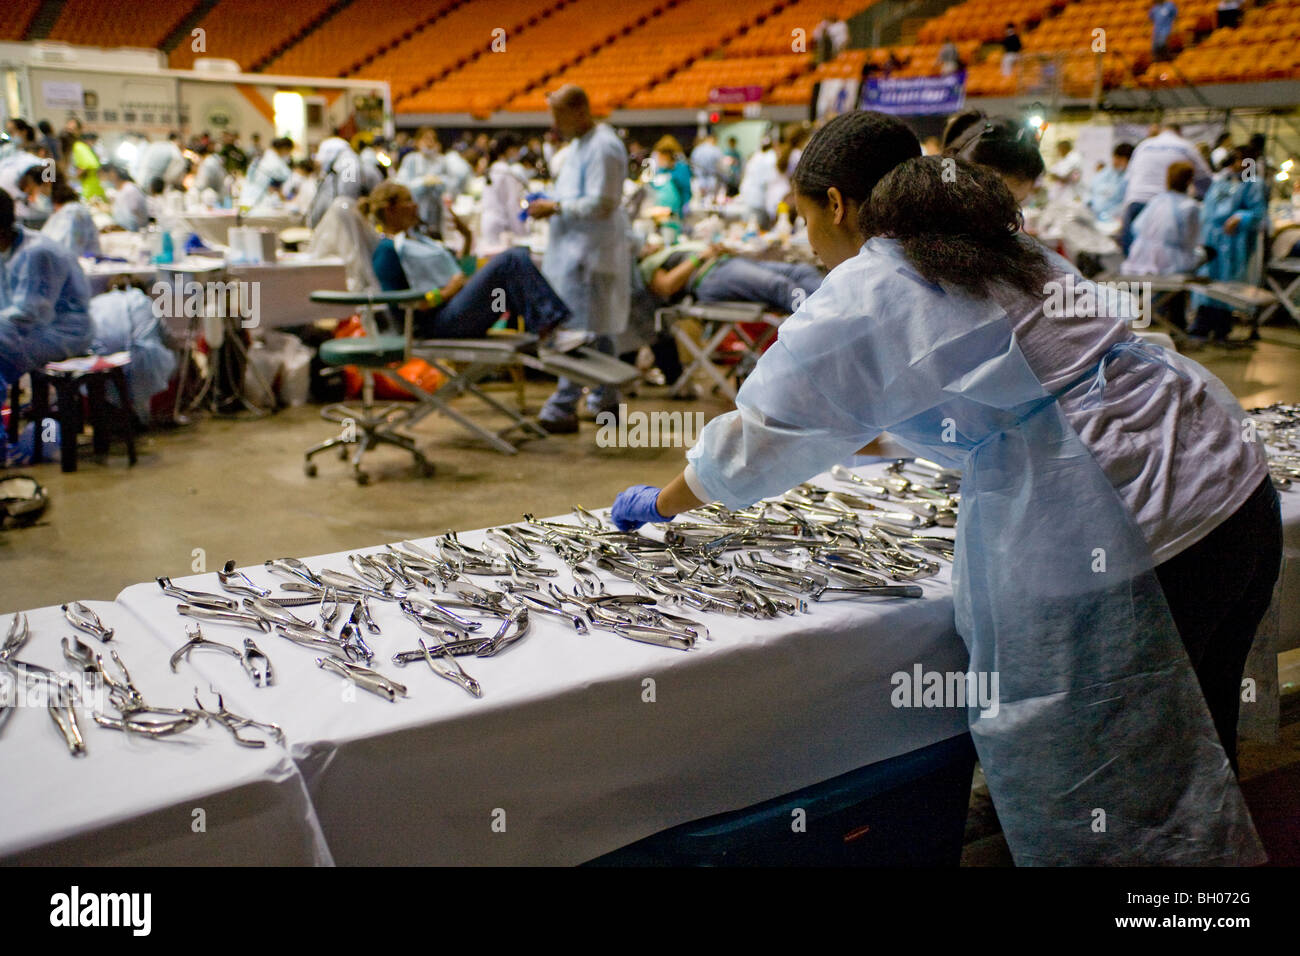 Sterilized dental instruments are laid out on a long table while hundreds of indigent people receive free dental - Stock Image